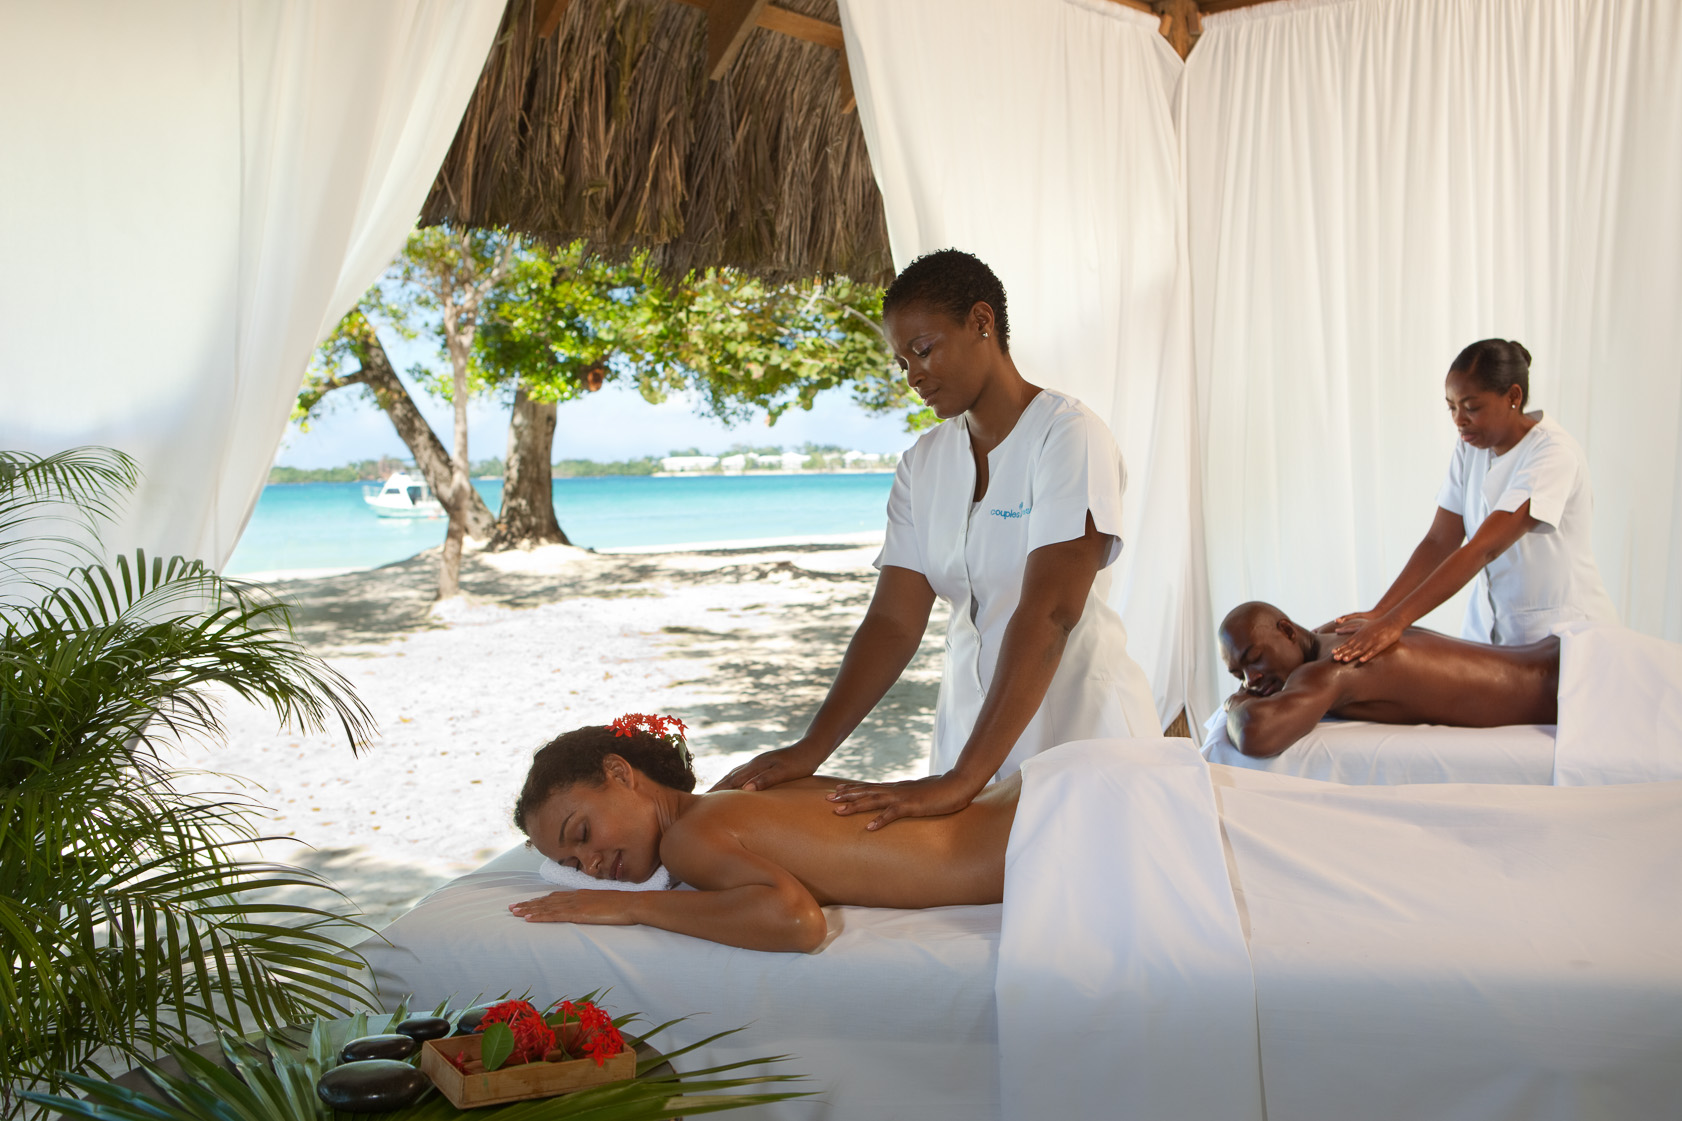 Best places to meditate at Couples Resorts